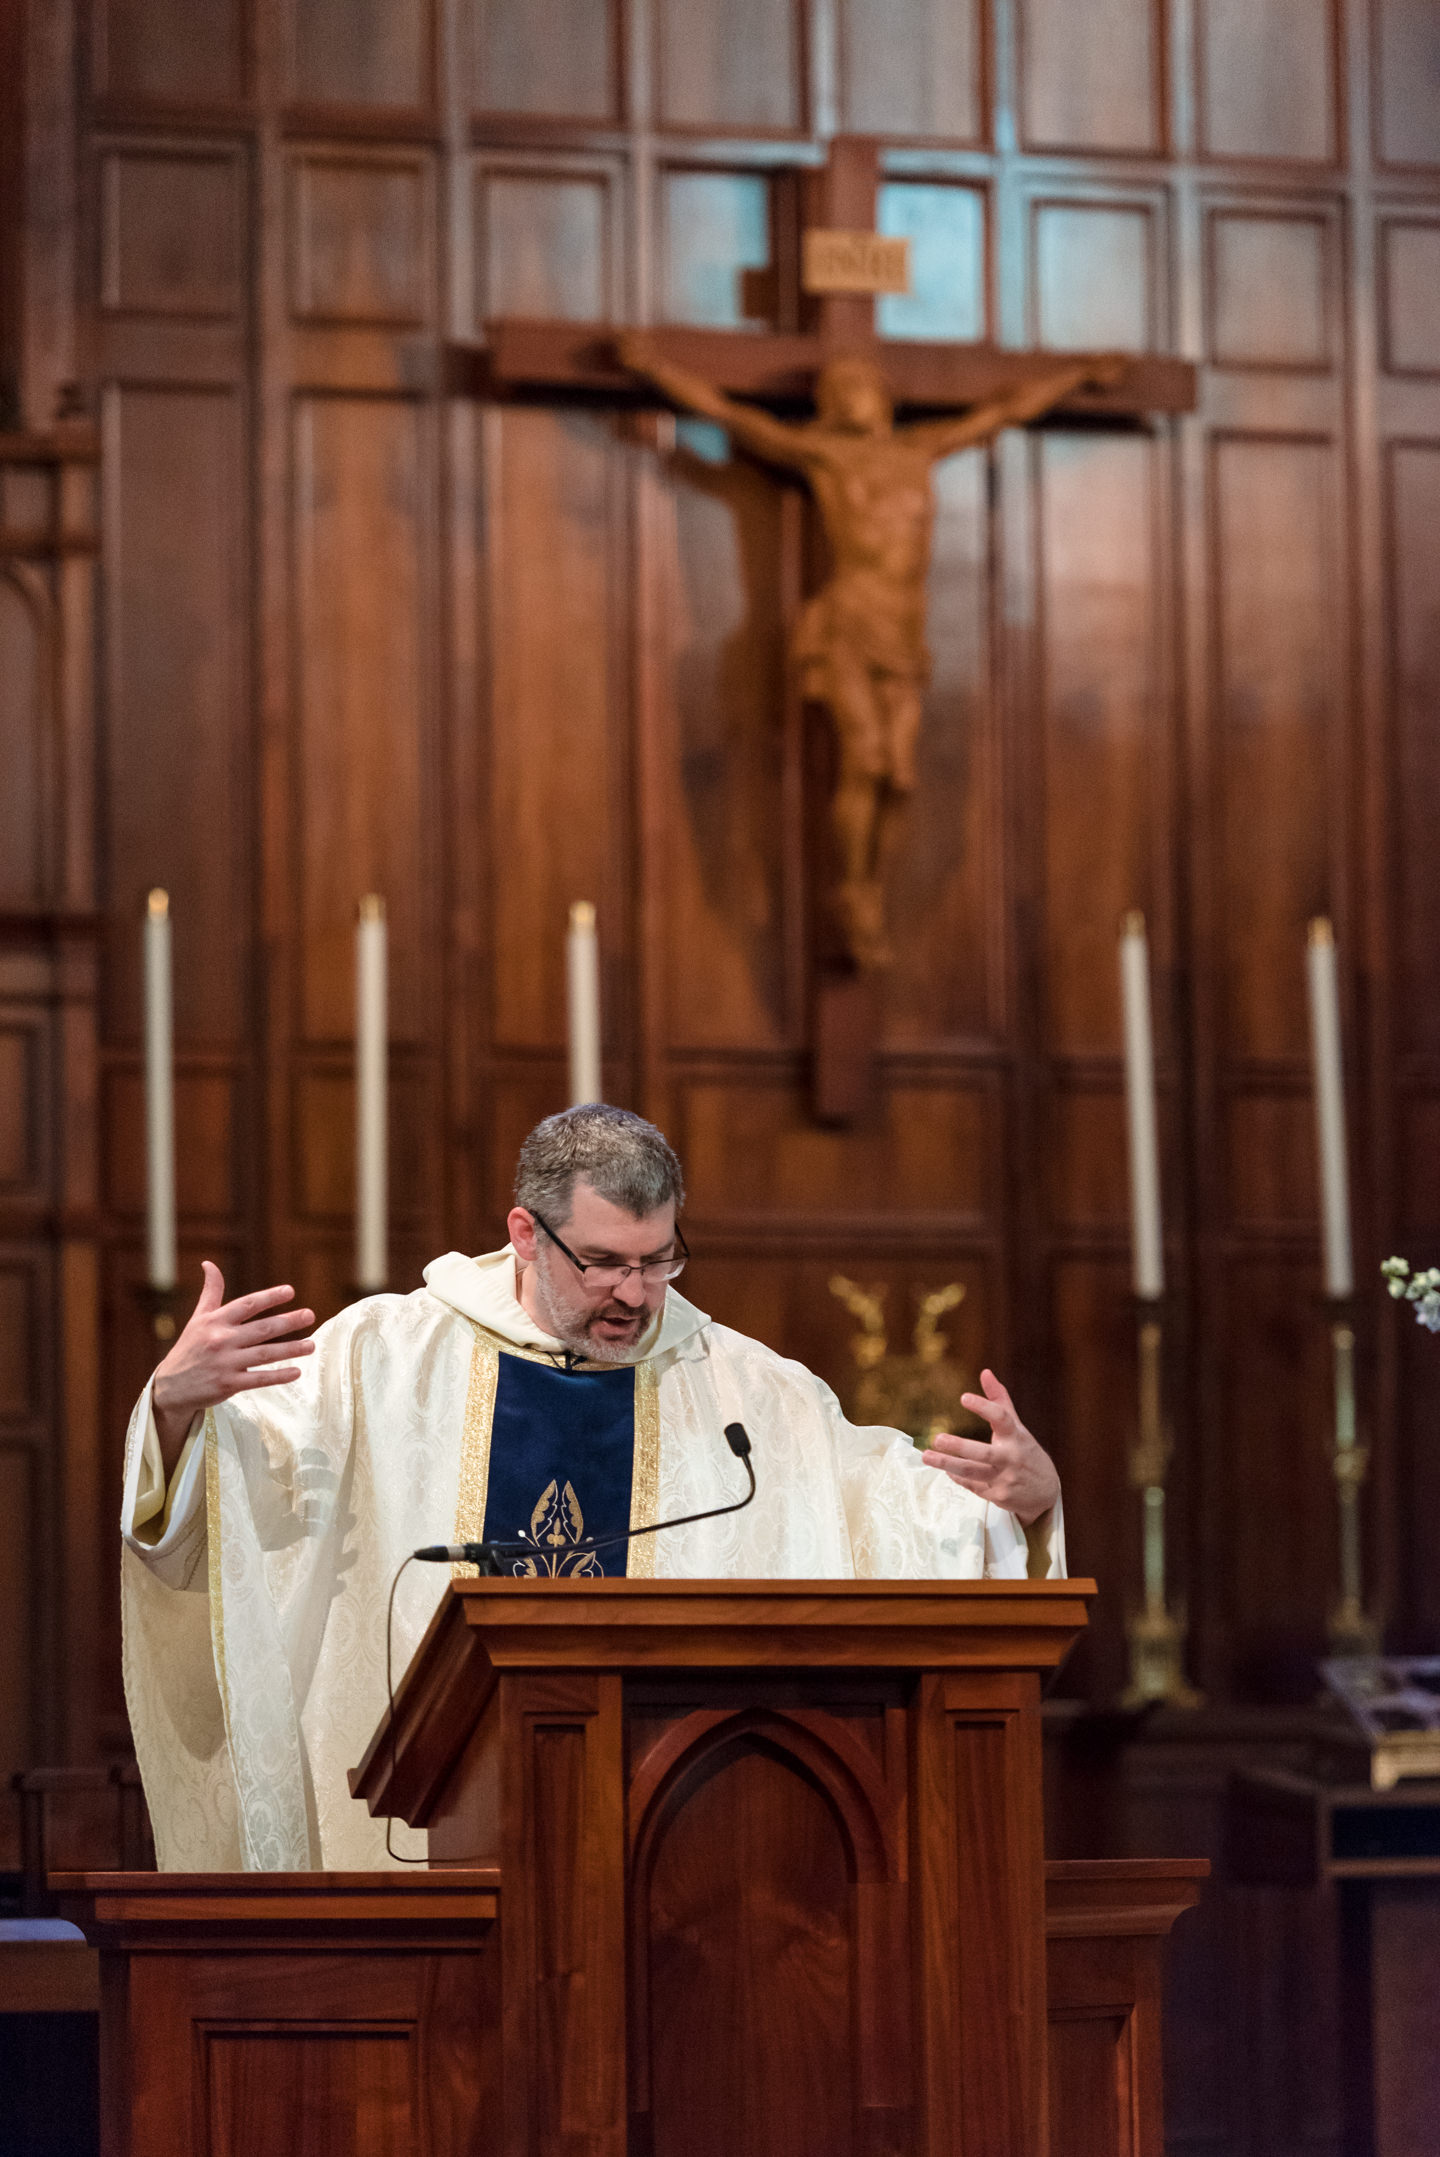 Priest Gives Sermon during Wedding Ceremony